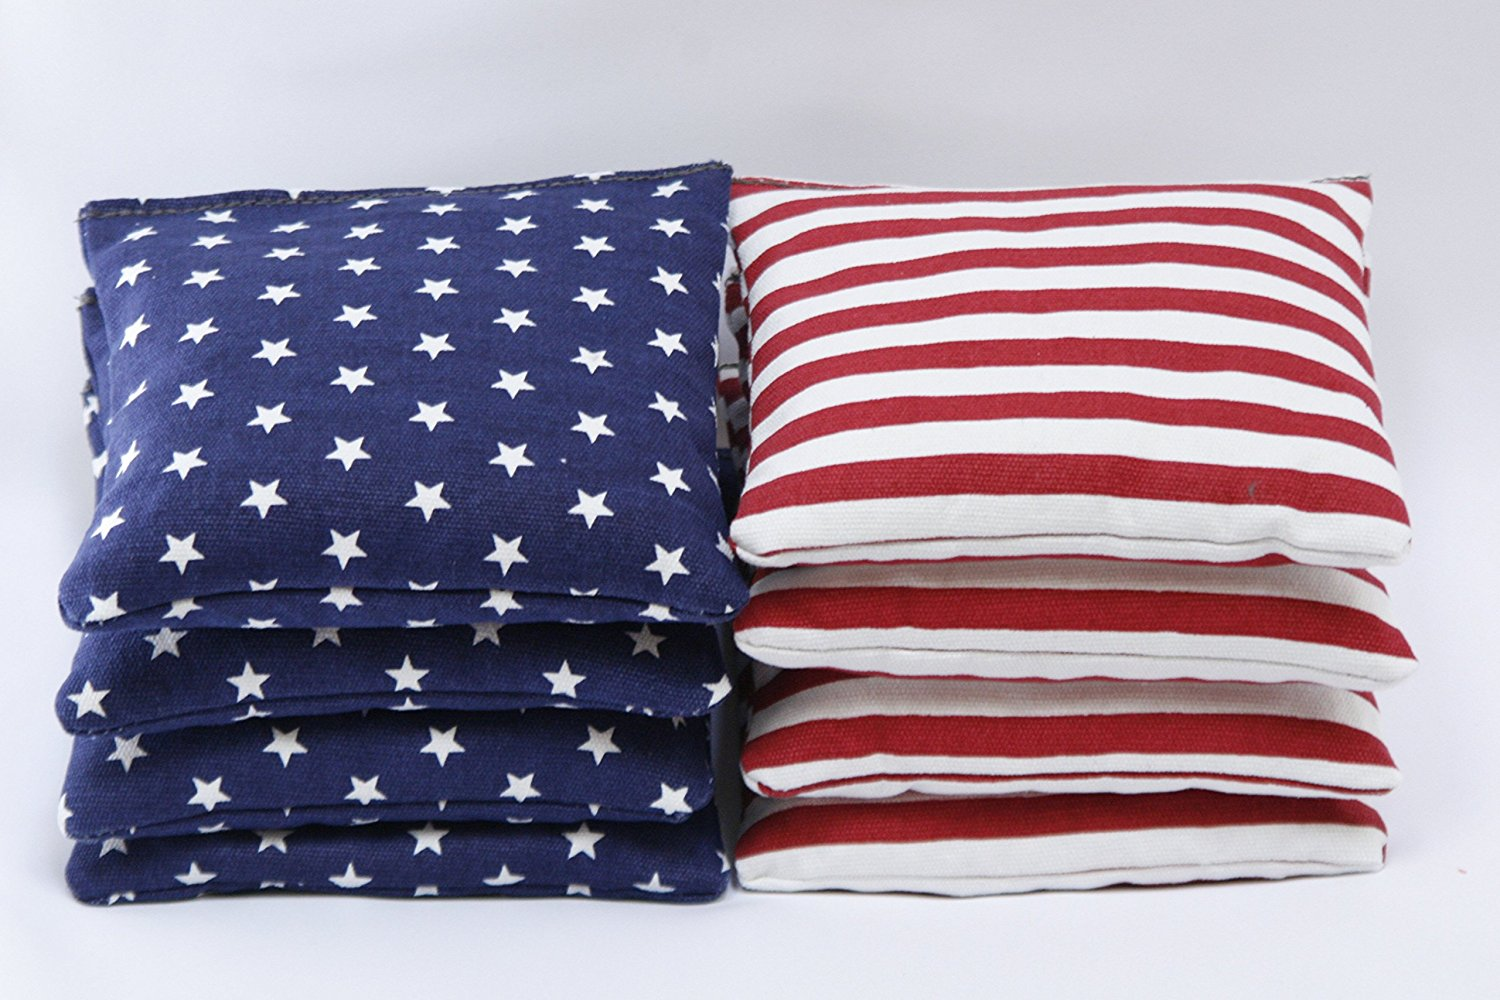 Cornhole Bags: Set of 8 Free Donkey Sports Stars and Stripes ACA regulation cornhole bags. by Free Donkey Sports?